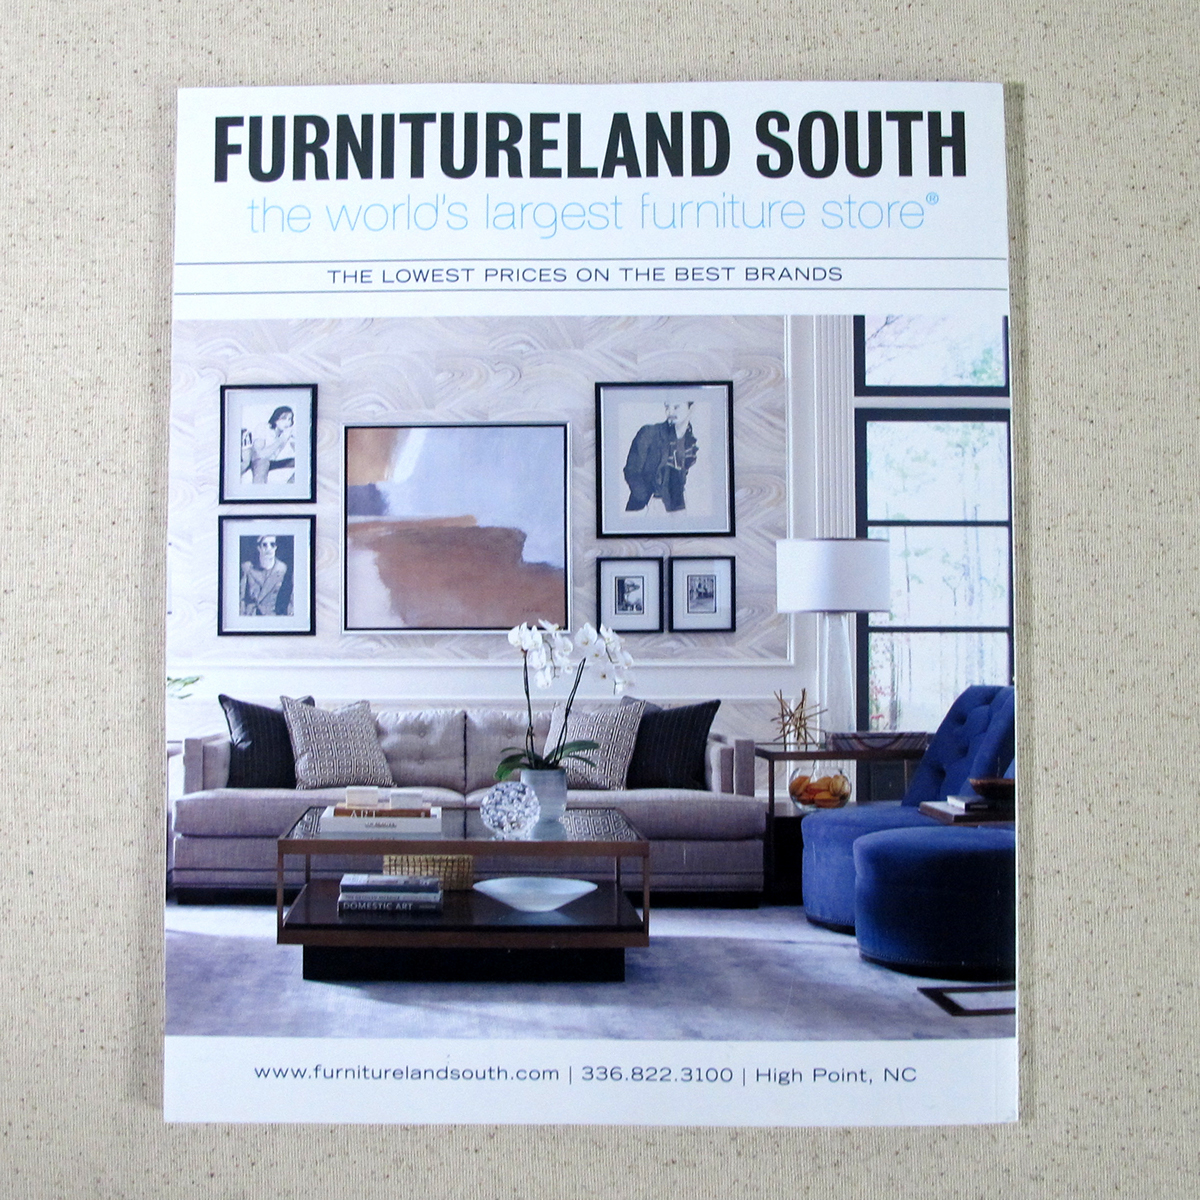 Print Advertising For Furnitureland South On Aiga Member